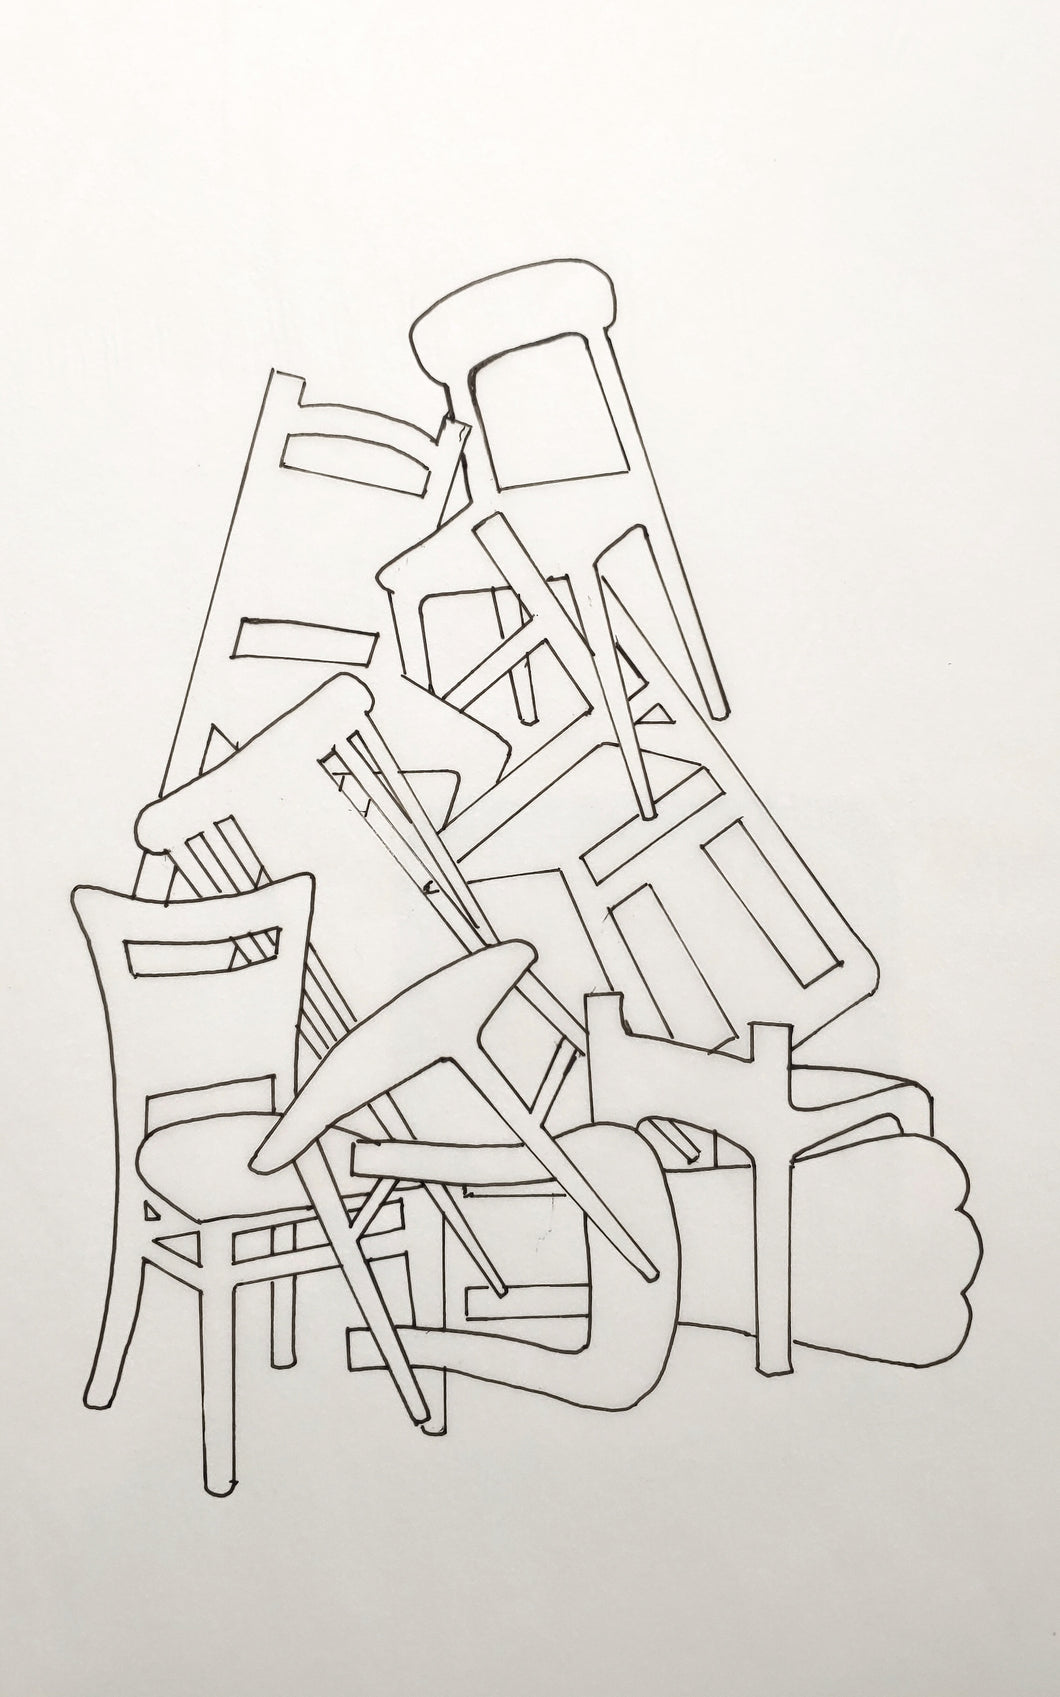 Study #2: Stacked Chairs Composition